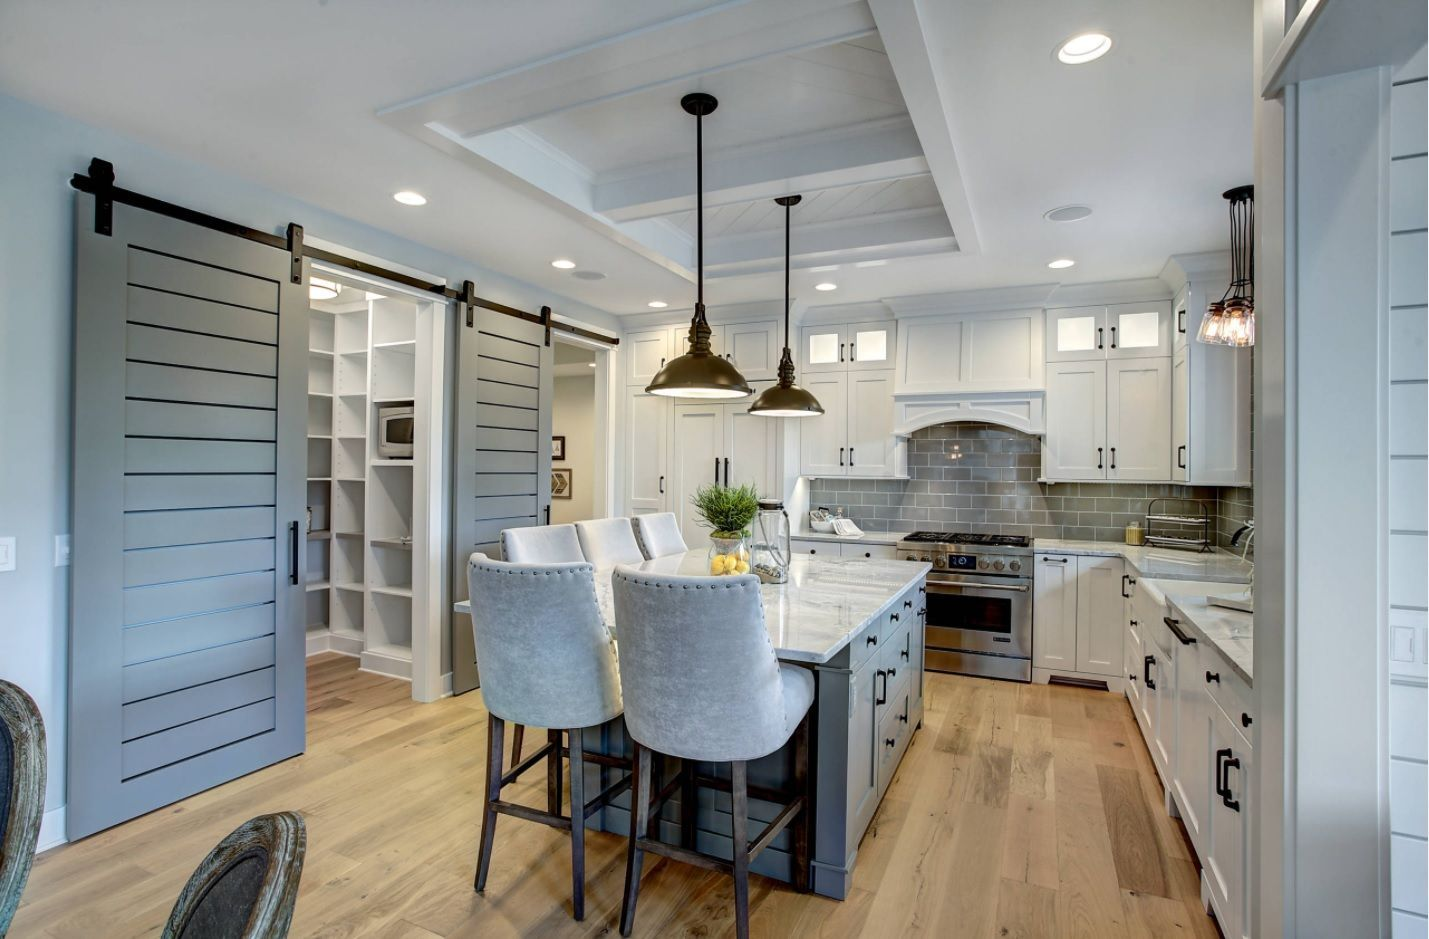 Common space of combined kitchen, wardrobe and entrance in Classic light color theme